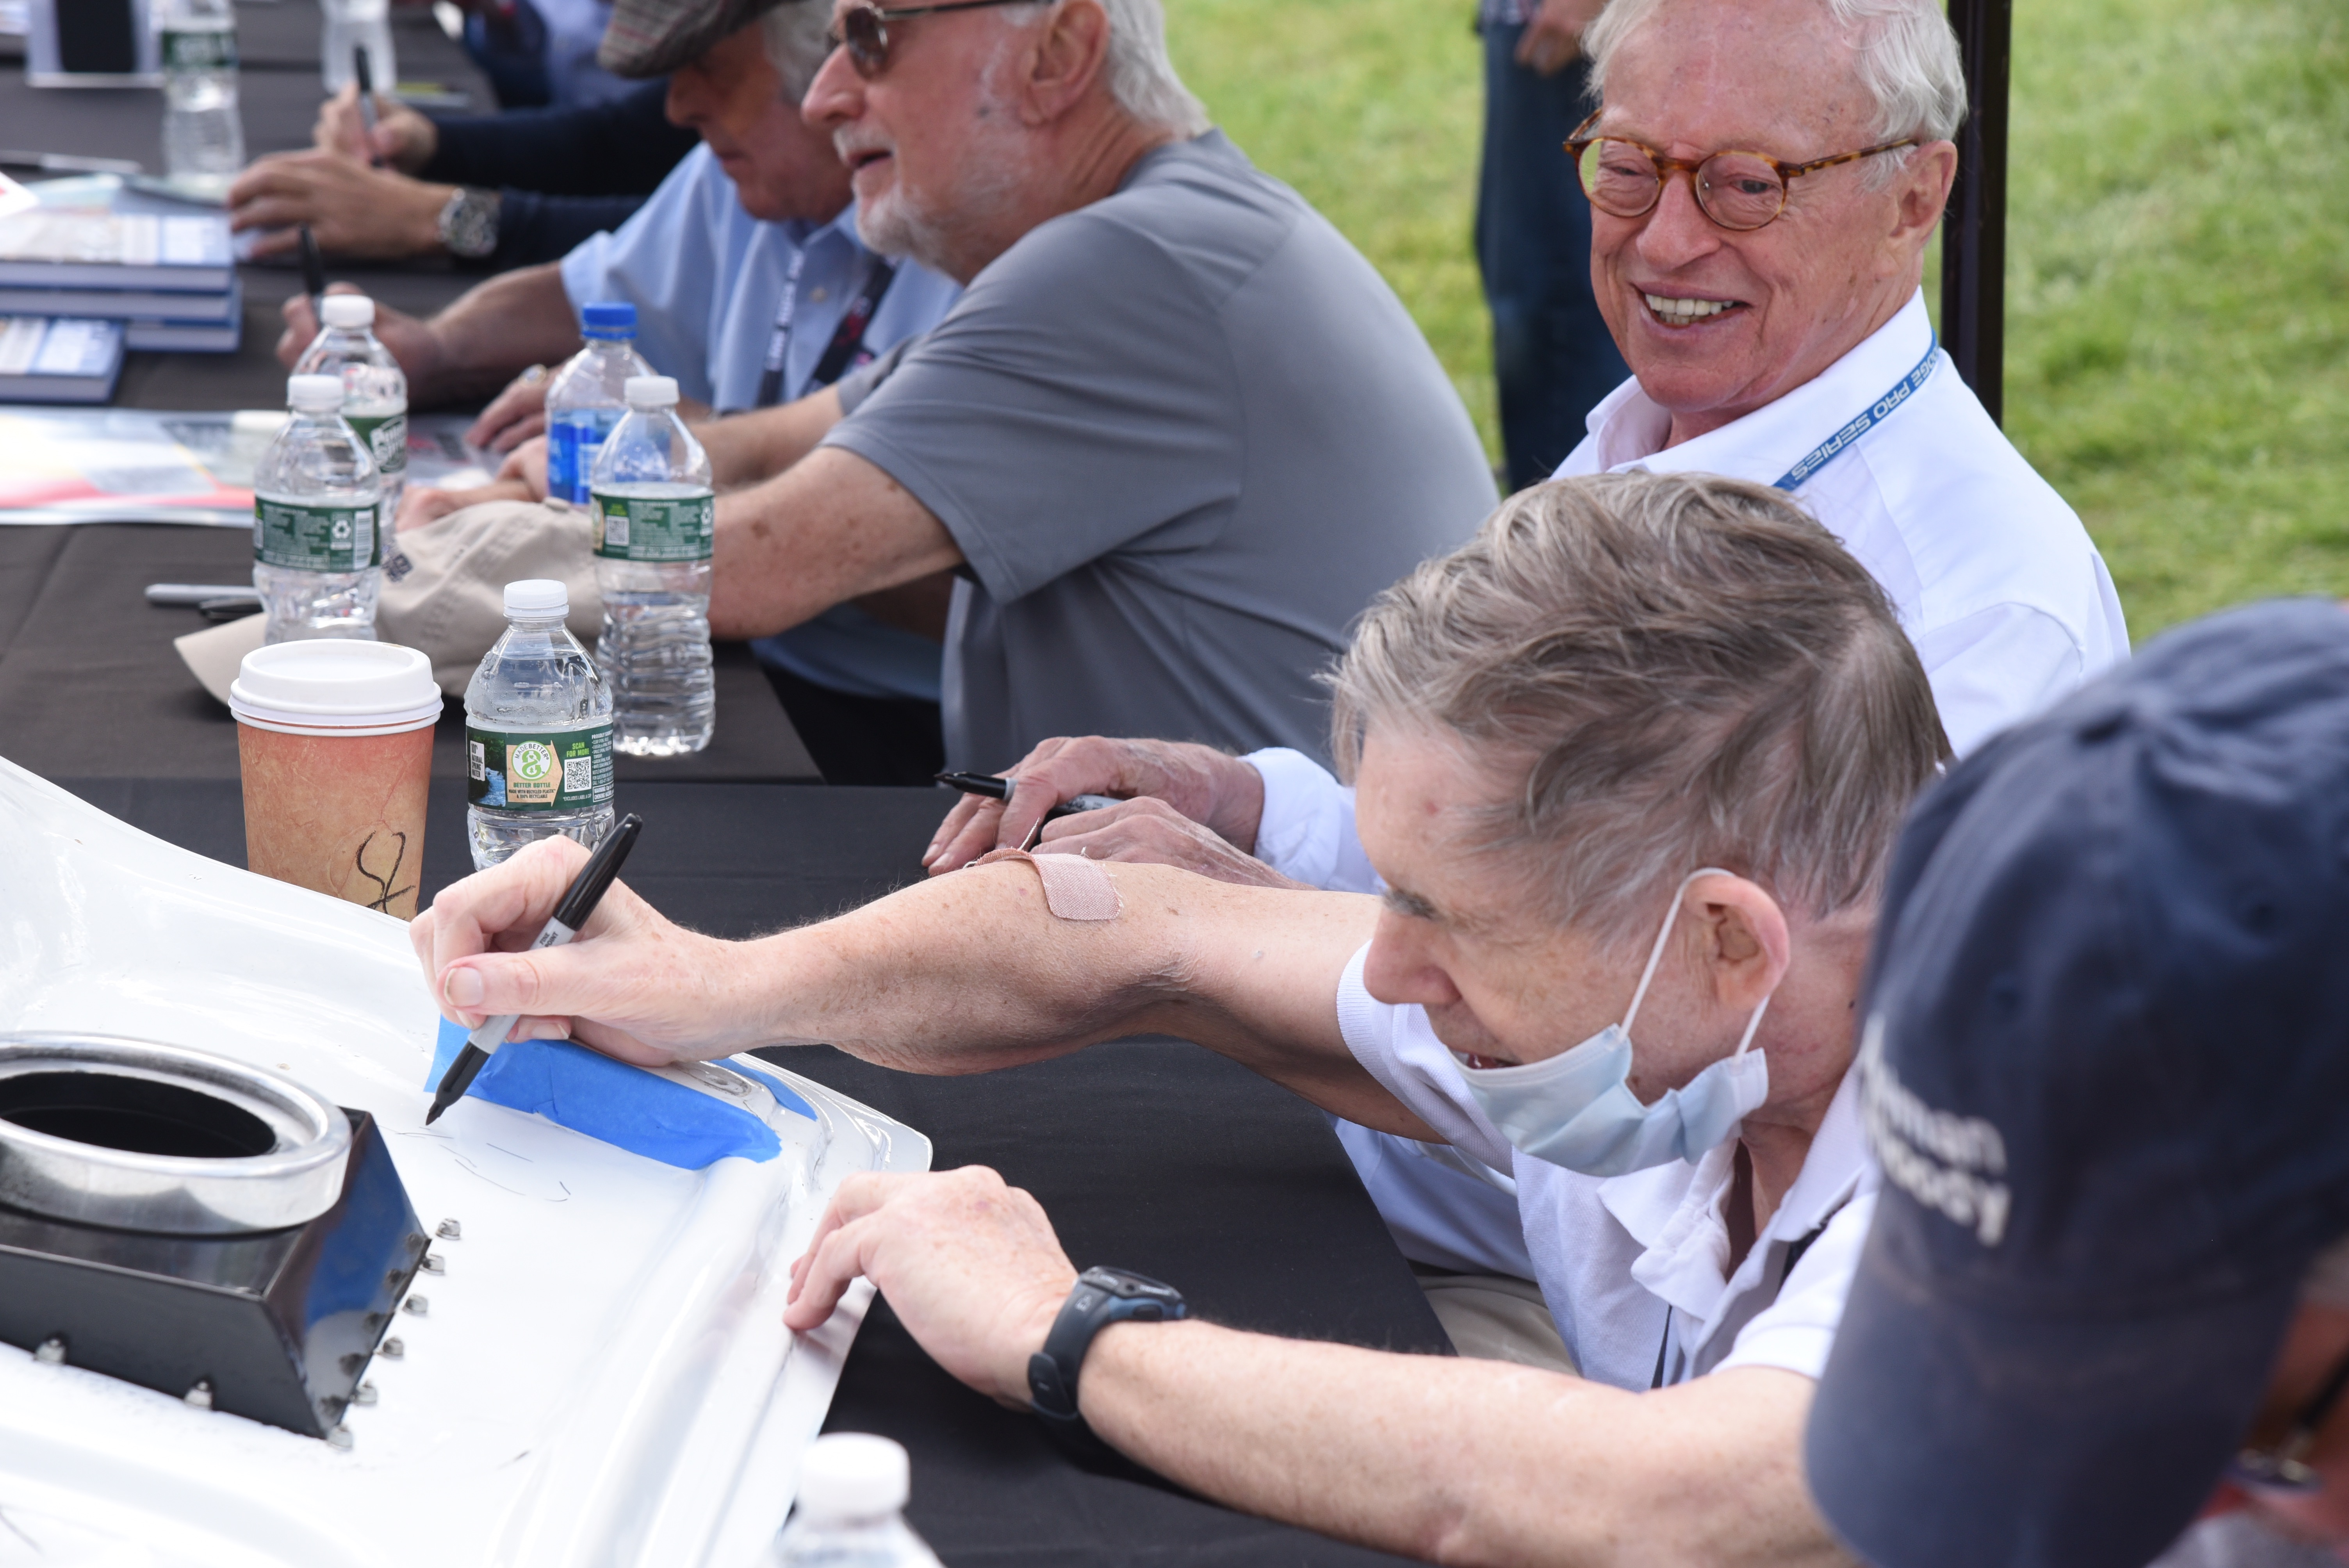 <strong>There were book signing events throughout the weekend, with authors including local race heroes Skip Barber (an owner of the track) and Sam Posey, who signed a car part for one enthusiastic fan.<em>Photoby Lans Christensen</em></strong>